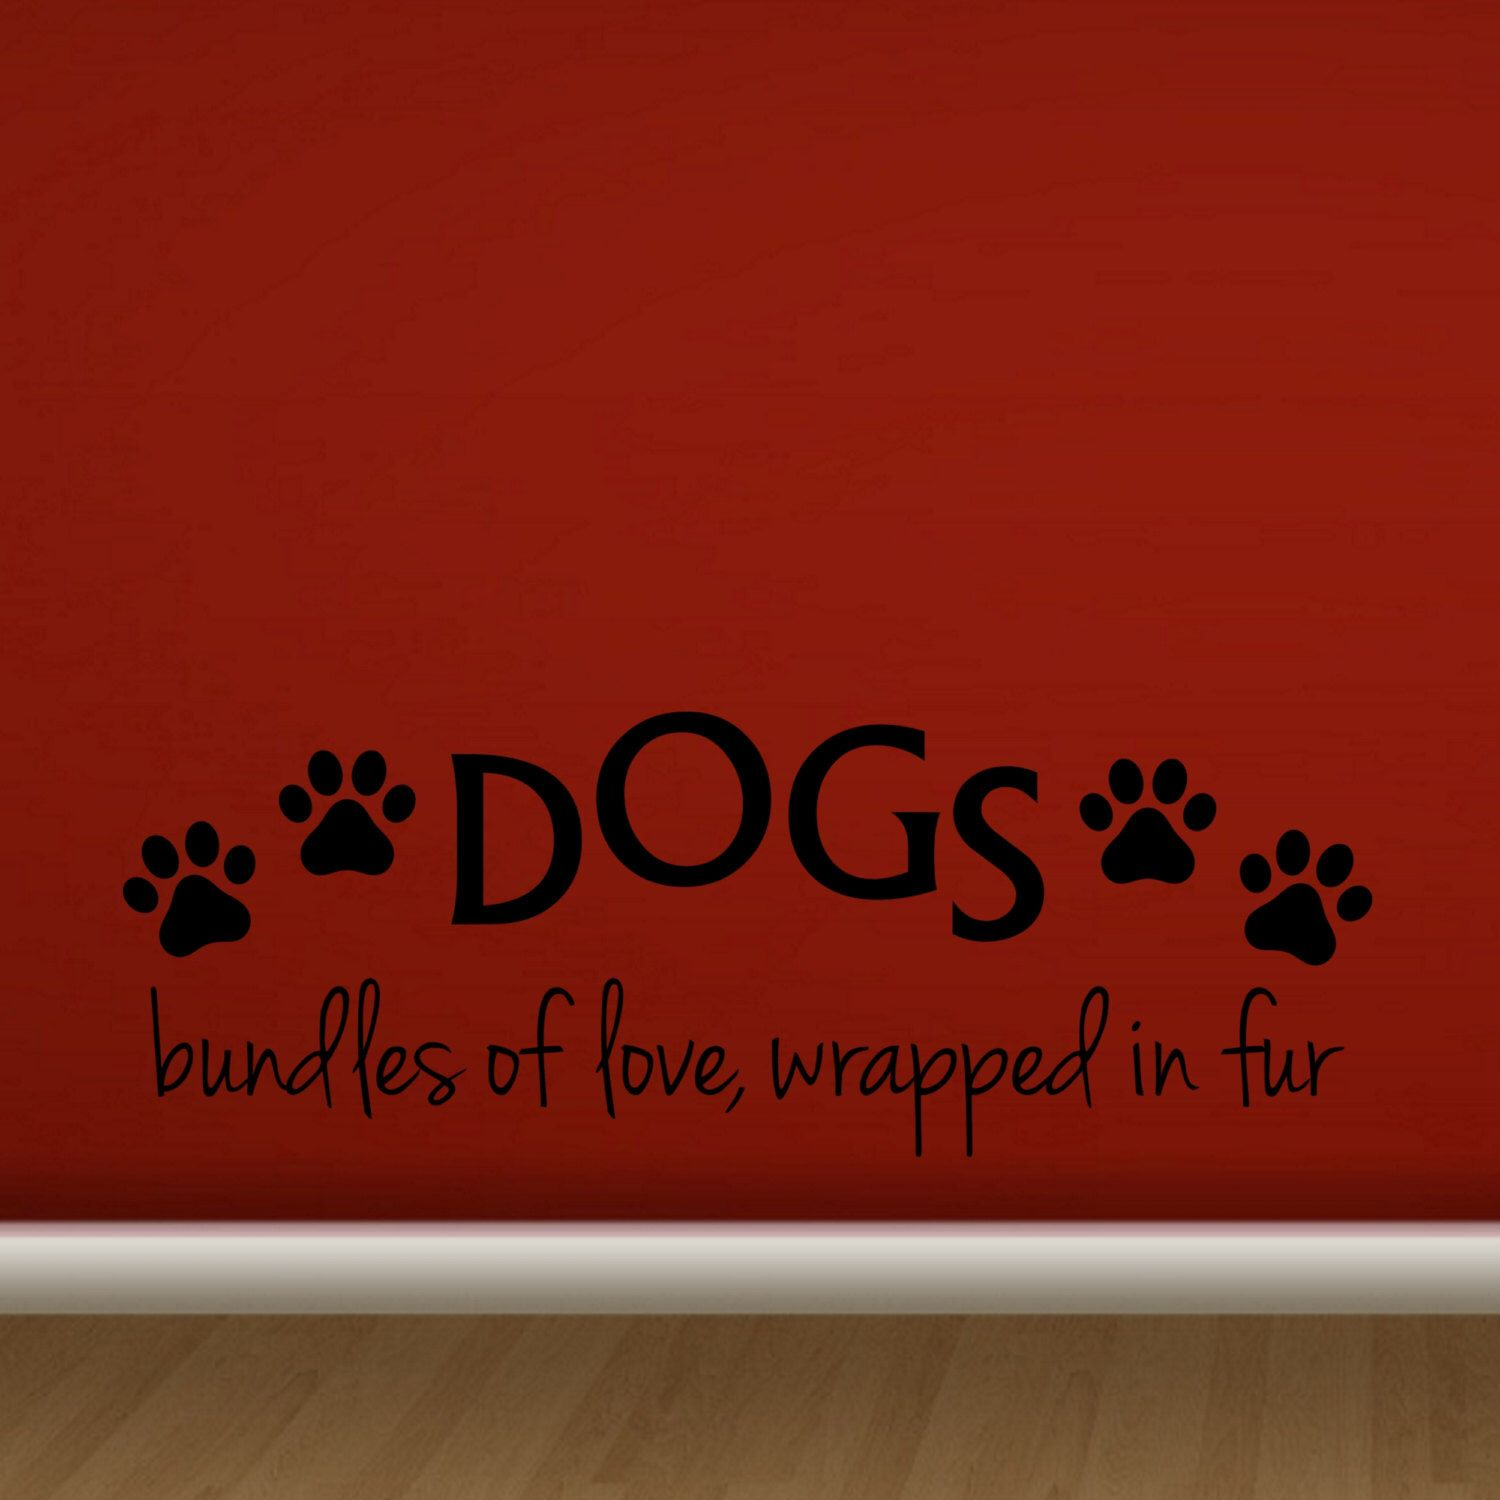 Dogs Bundles Of Love Wrapped In Fur Decal Wall Vinyl Etsy Pet Store Ideas Pet Store Puppy Paw Prints